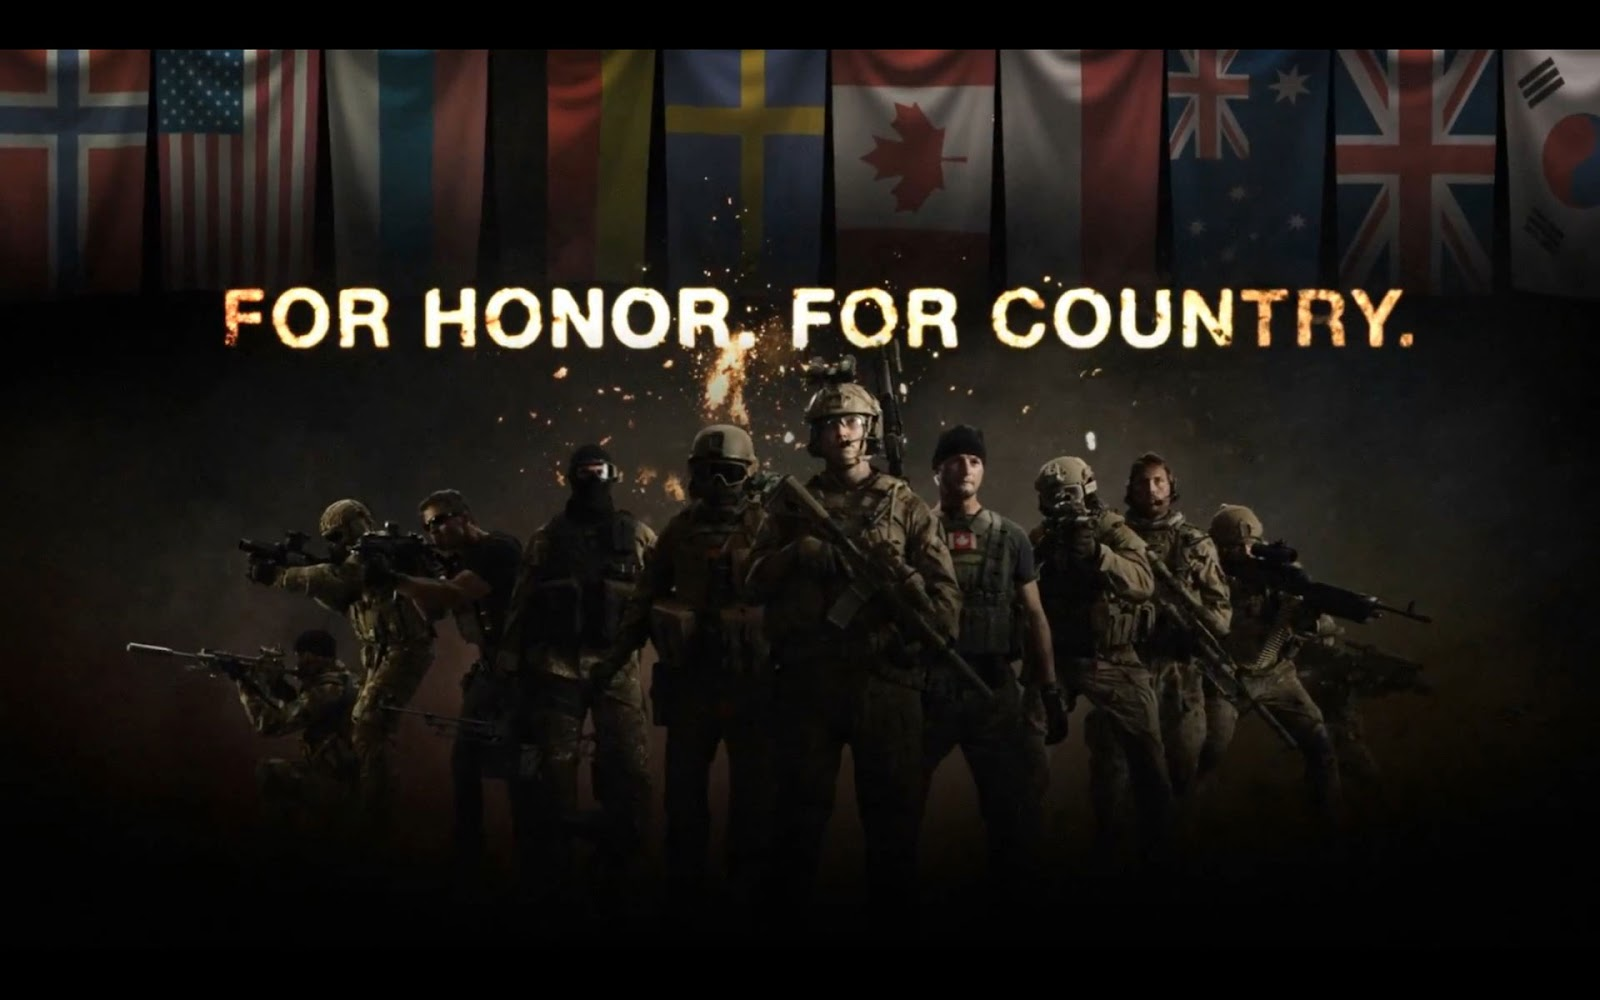 http://4.bp.blogspot.com/-WP9fuOidfr4/UWGu5oel1cI/AAAAAAAAP14/rCsKDauffl4/s1600/Medal+of+Honor+-+Warfighter+Wallpapers+%252819%2529.jpg